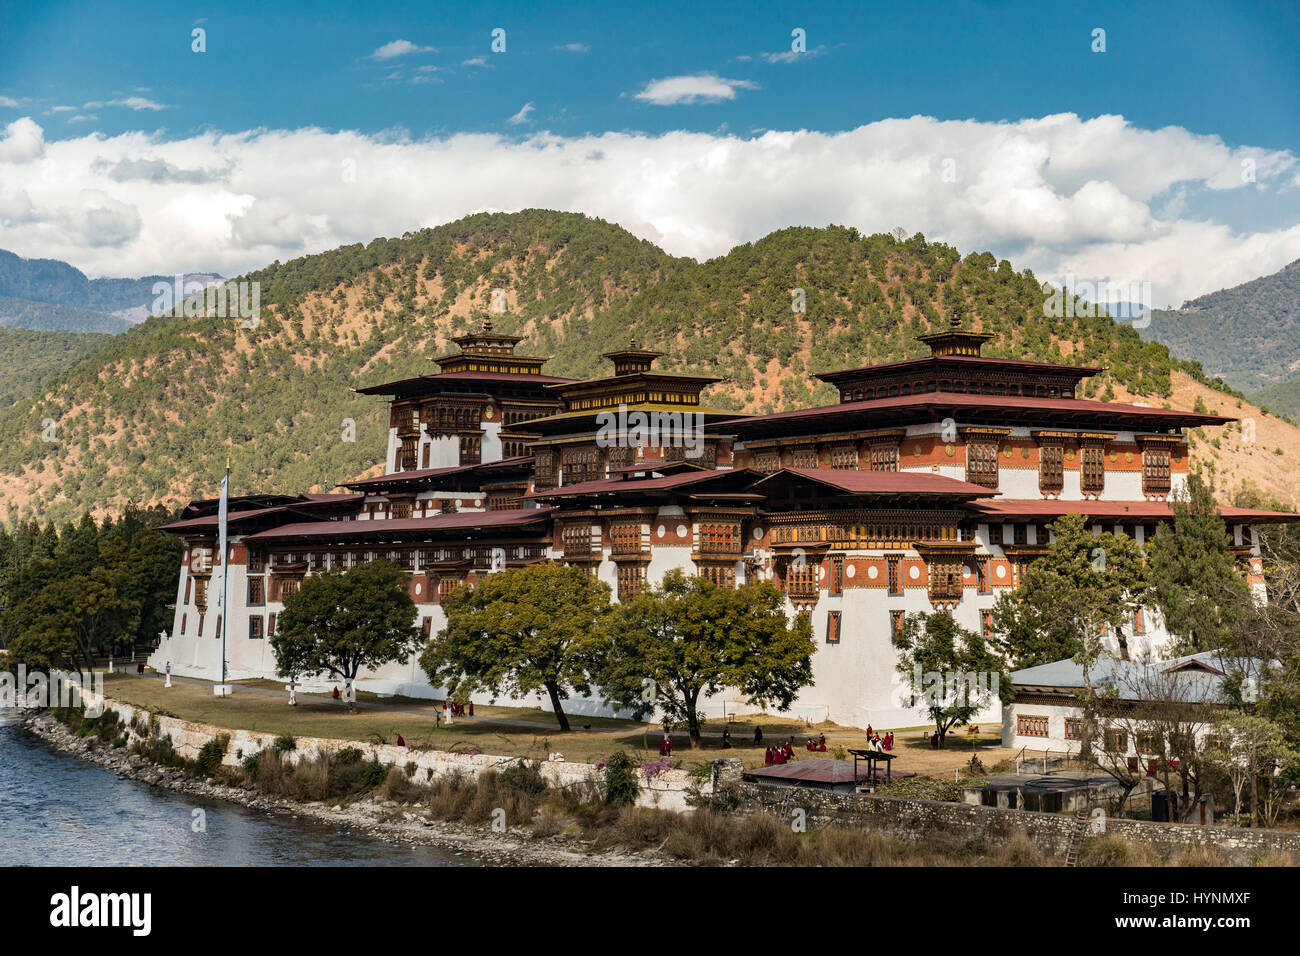 Punakha Dzong, a huge fortress monastery and administrative building in Bhutan - Stock Image